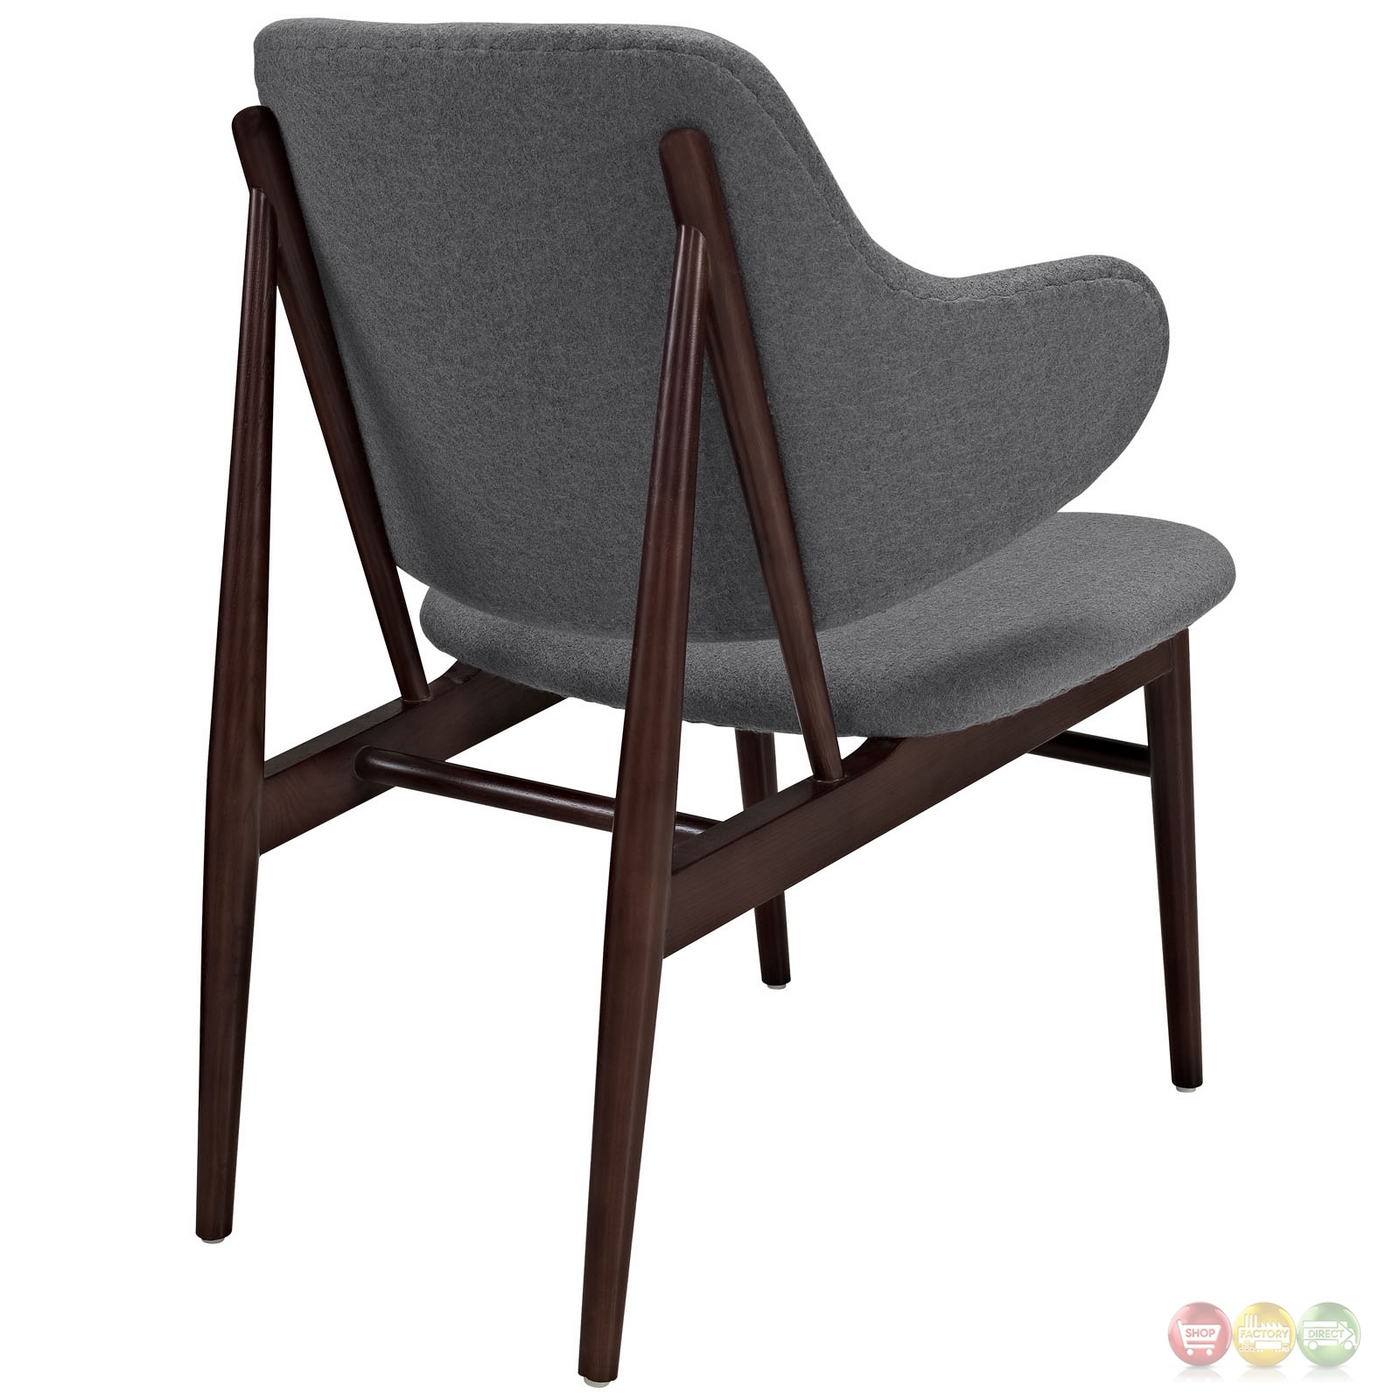 Cherry Chairs Cherish Modern Dark Cherry Wood Lounge Chair W Upholstered